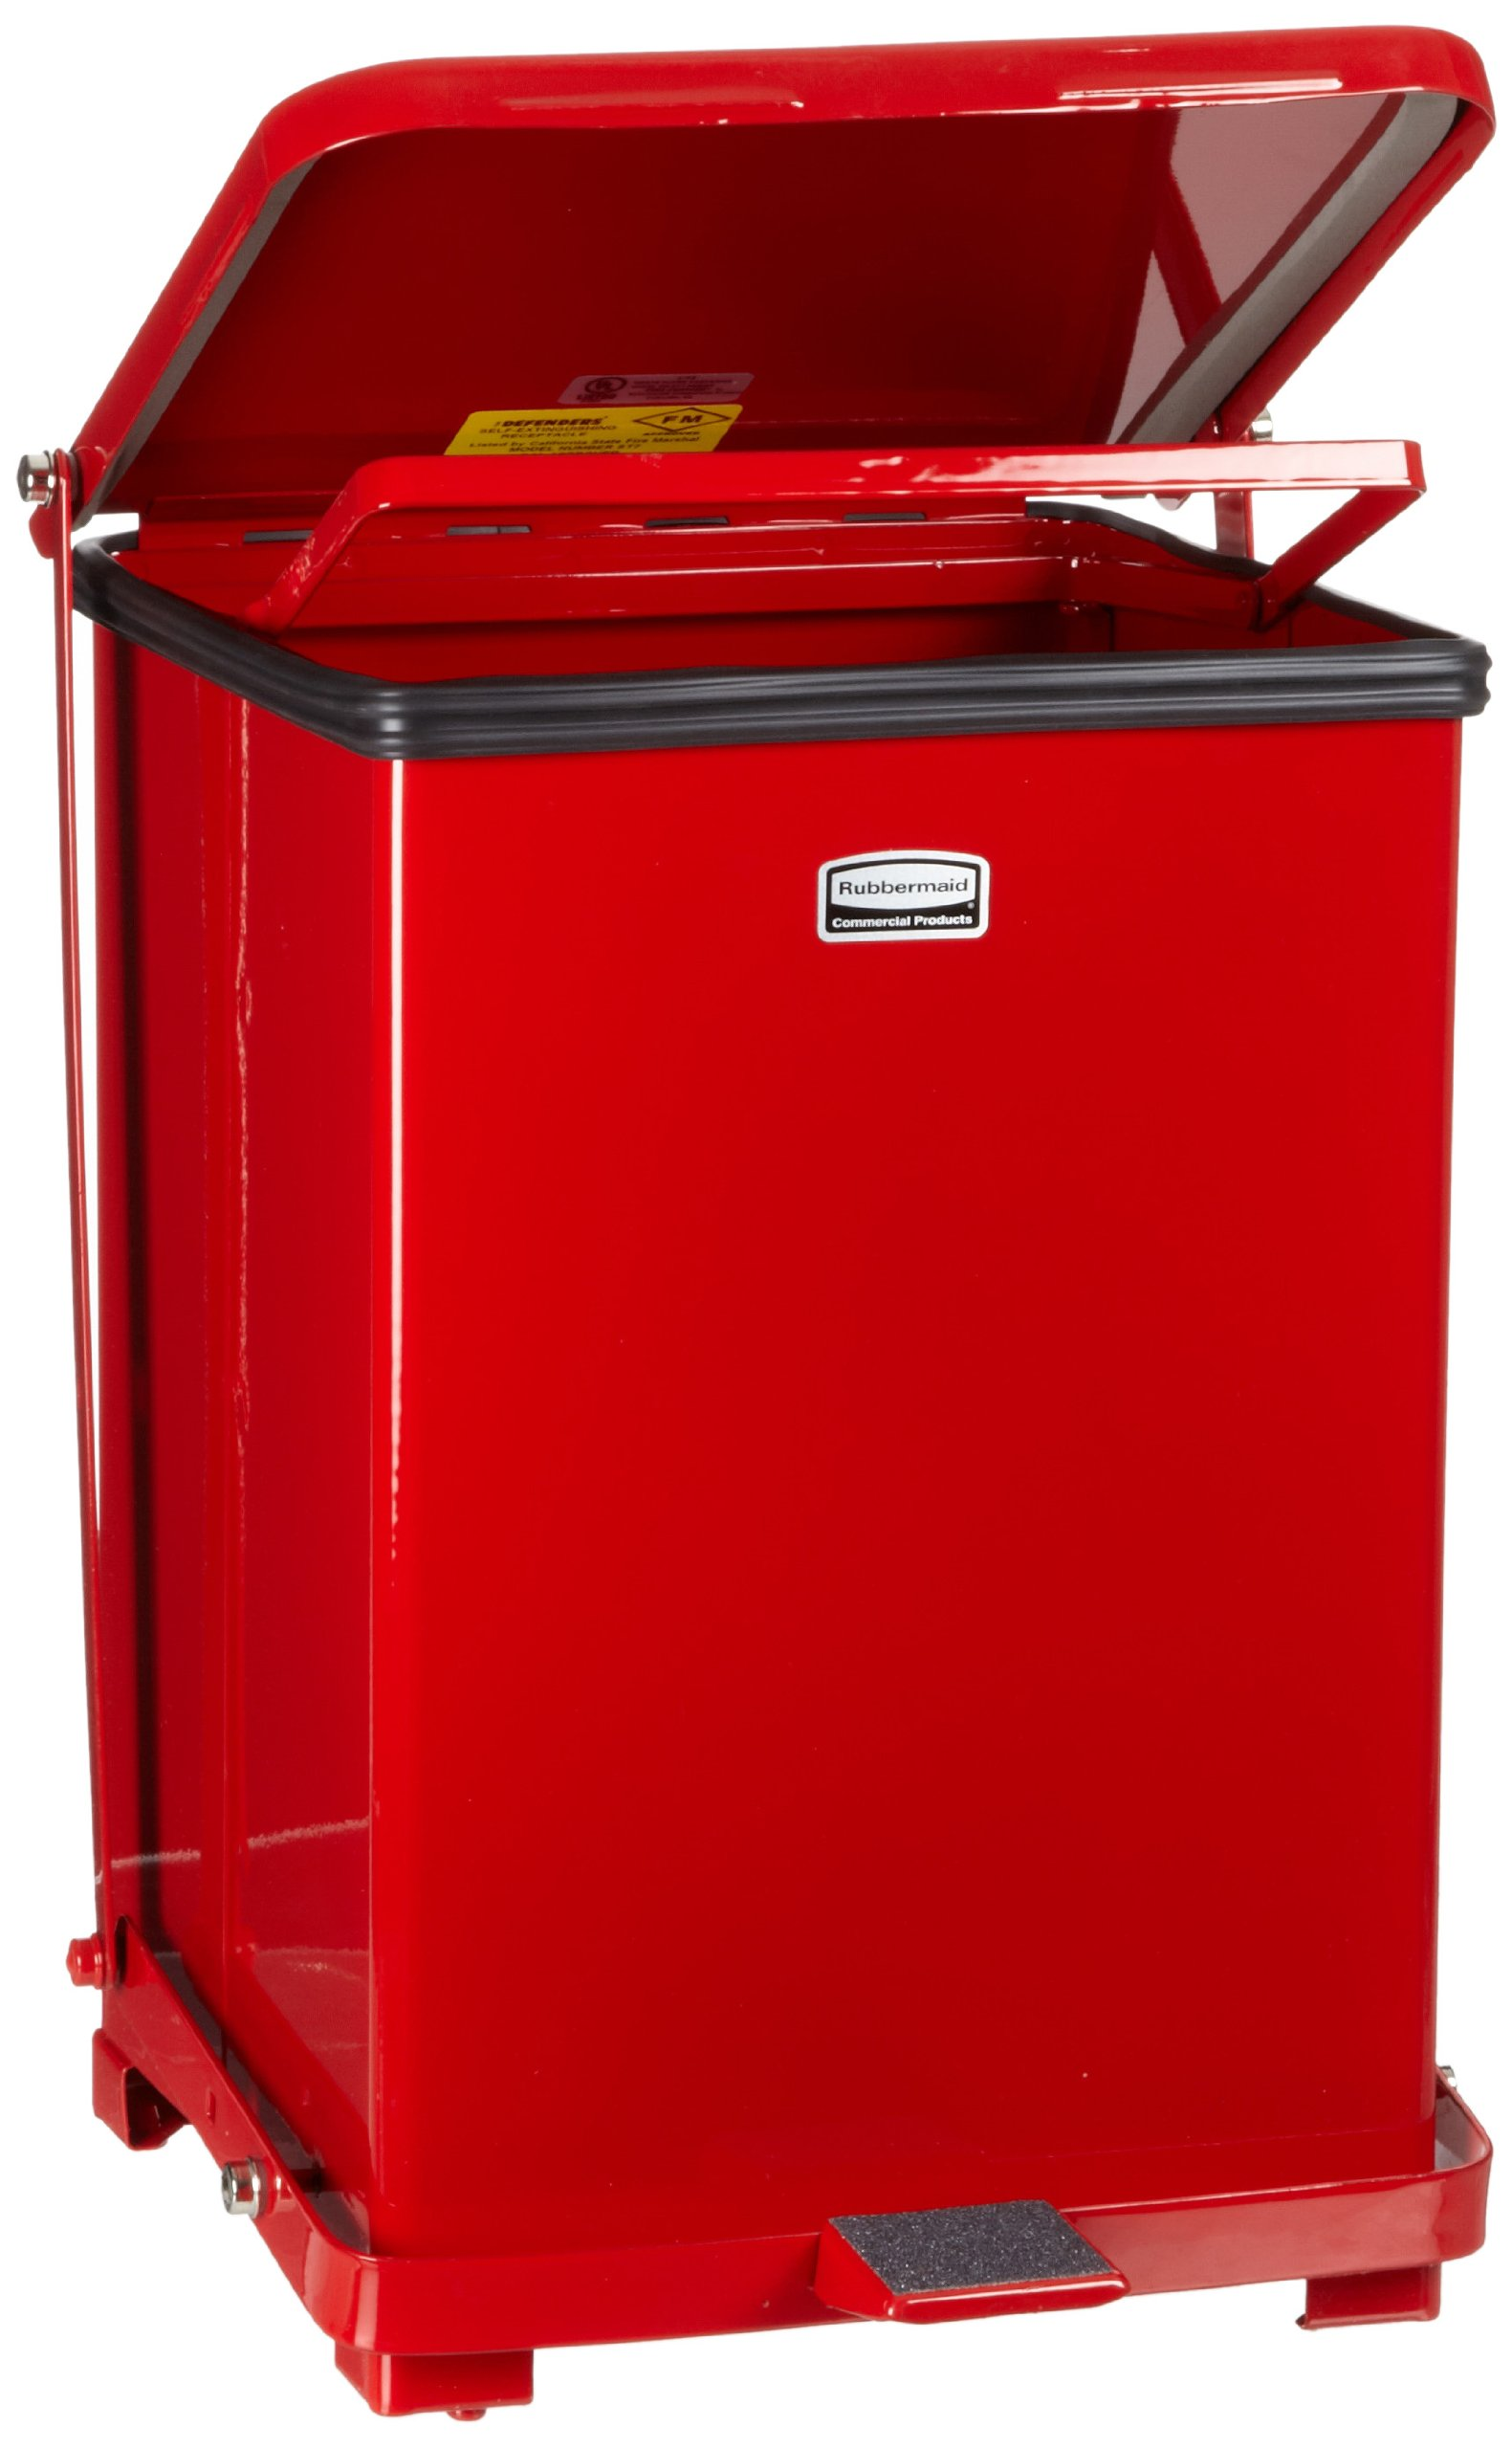 Rubbermaid Commercial Defenders Front Step-On Trash Can with Retainer Bands, 7 Gallon, Red, FGST7ERBRD